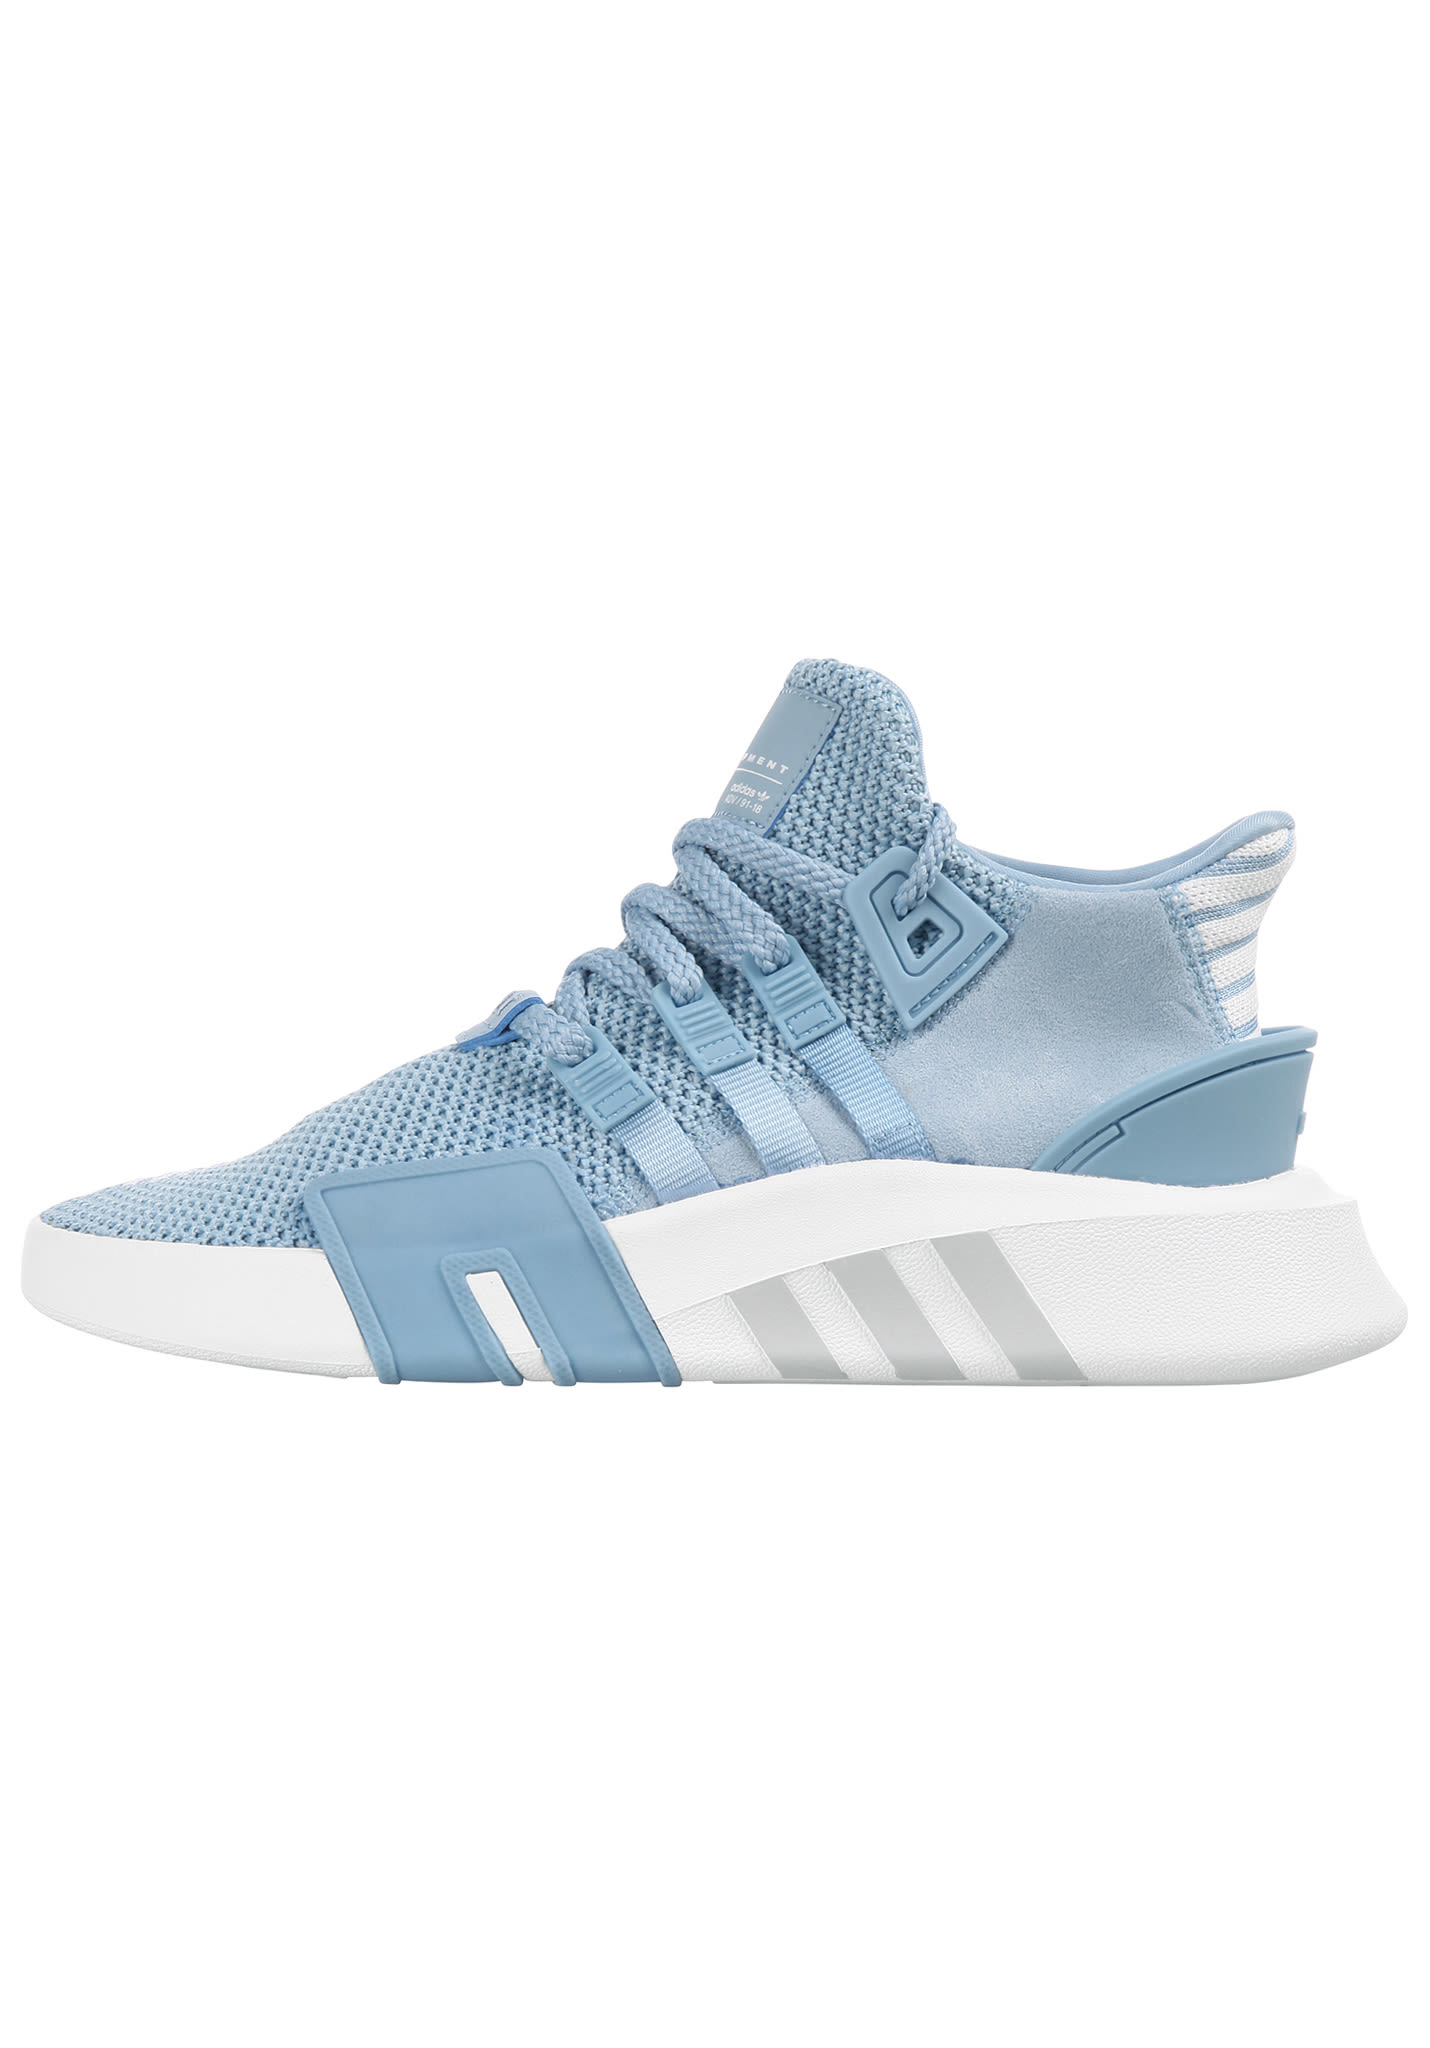 ADIDAS ORIGINALS Eqt Bask Adv - Sneakers for Women - Blue - Planet Sports 85b0074846